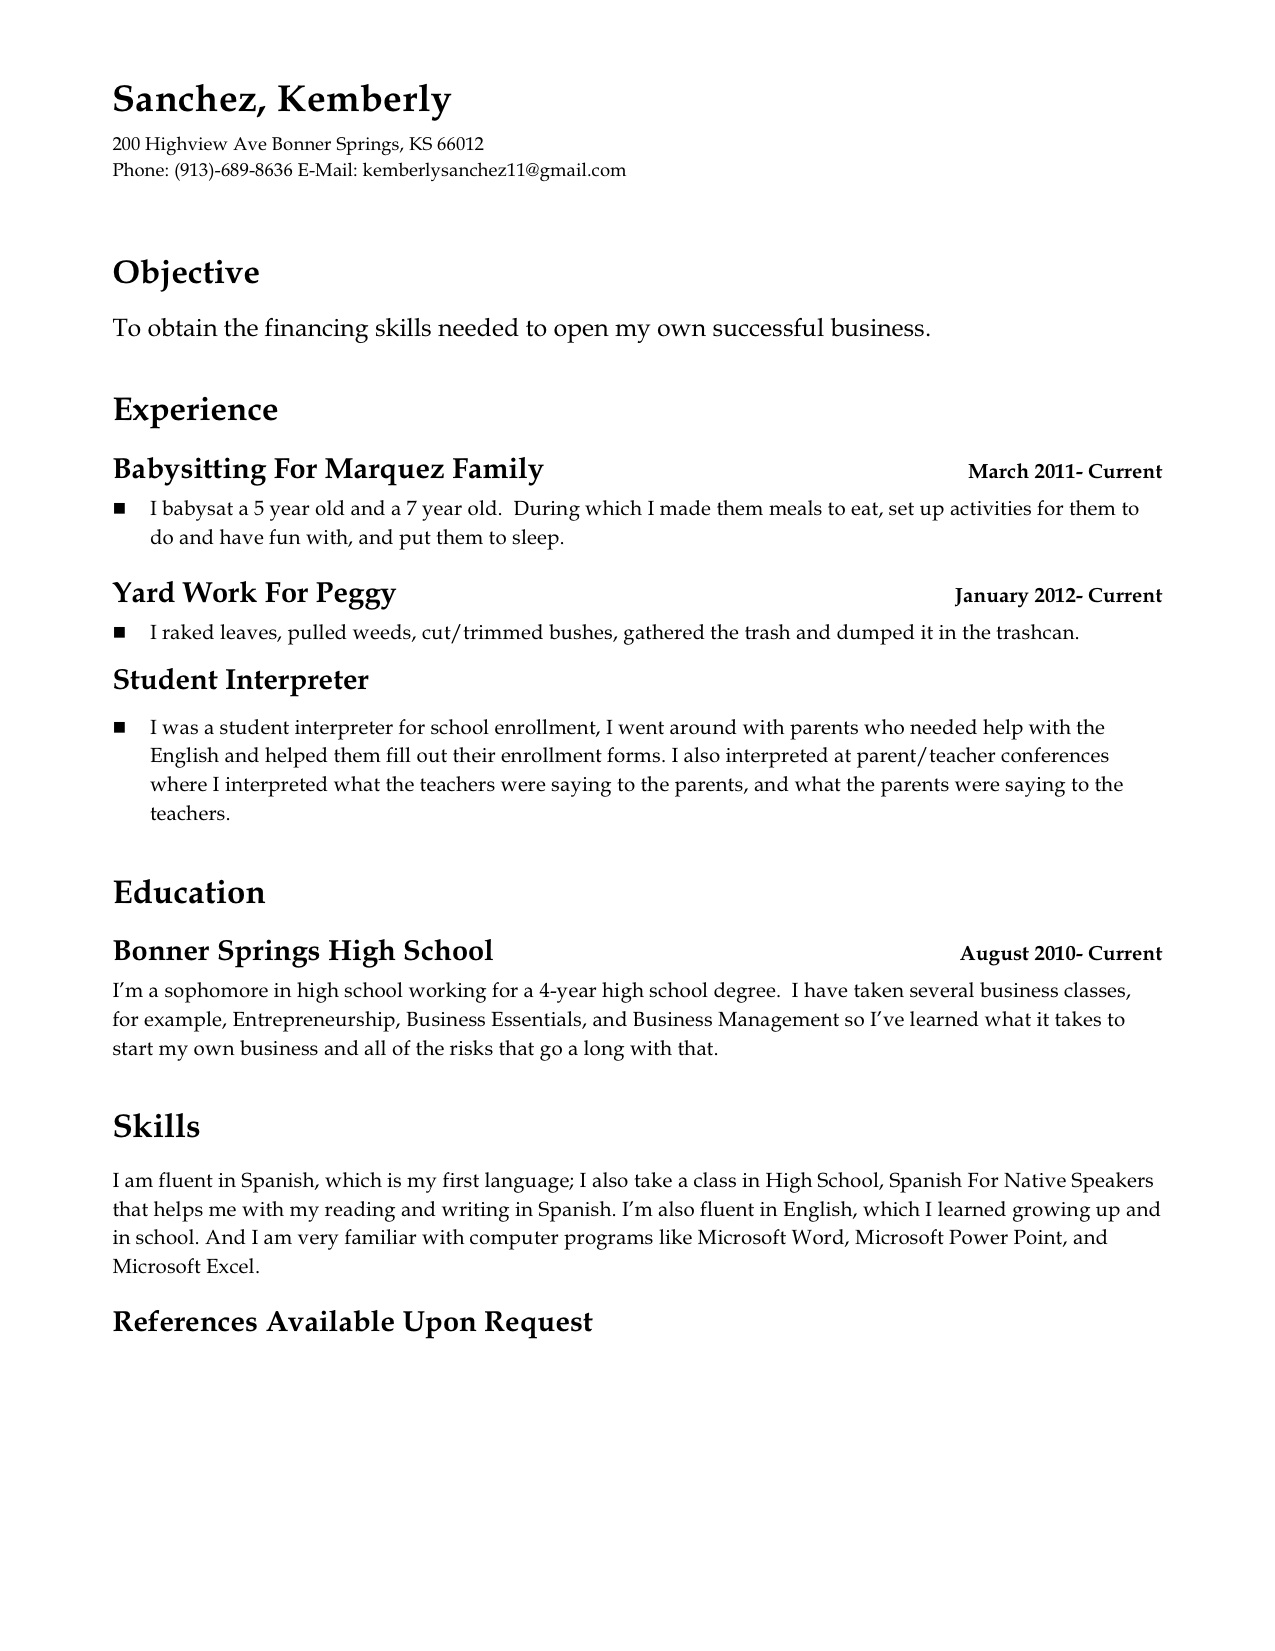 Supervisor Resume Examples 2012 Patrick Blog Catering Server Resumes